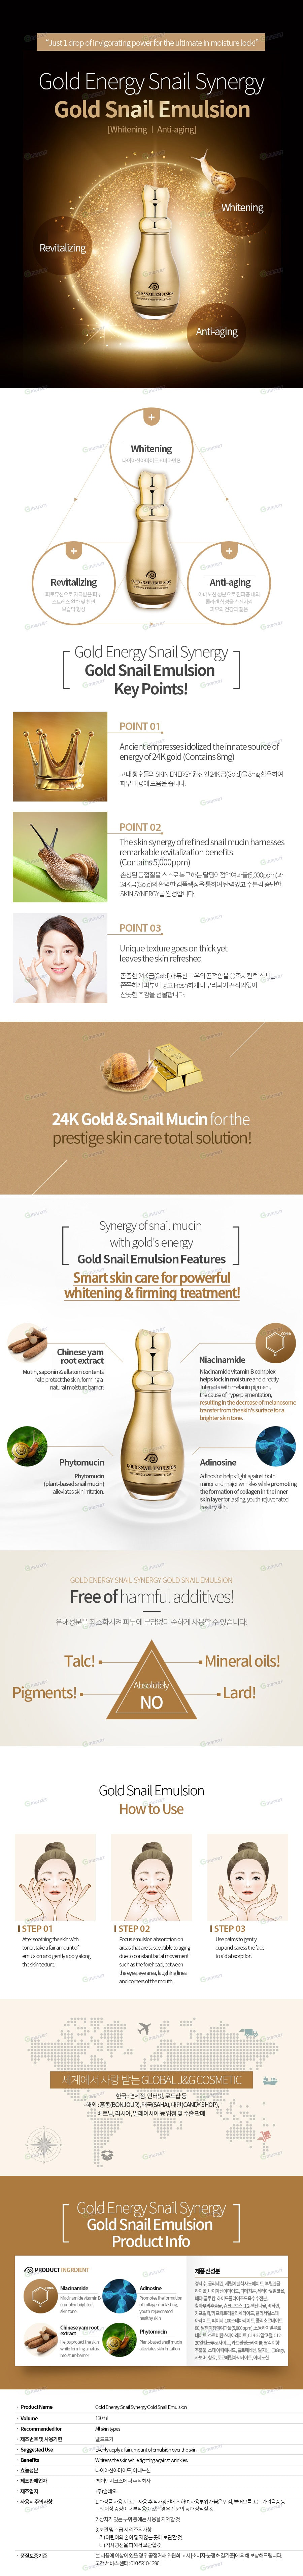 jng gold snail emulsion